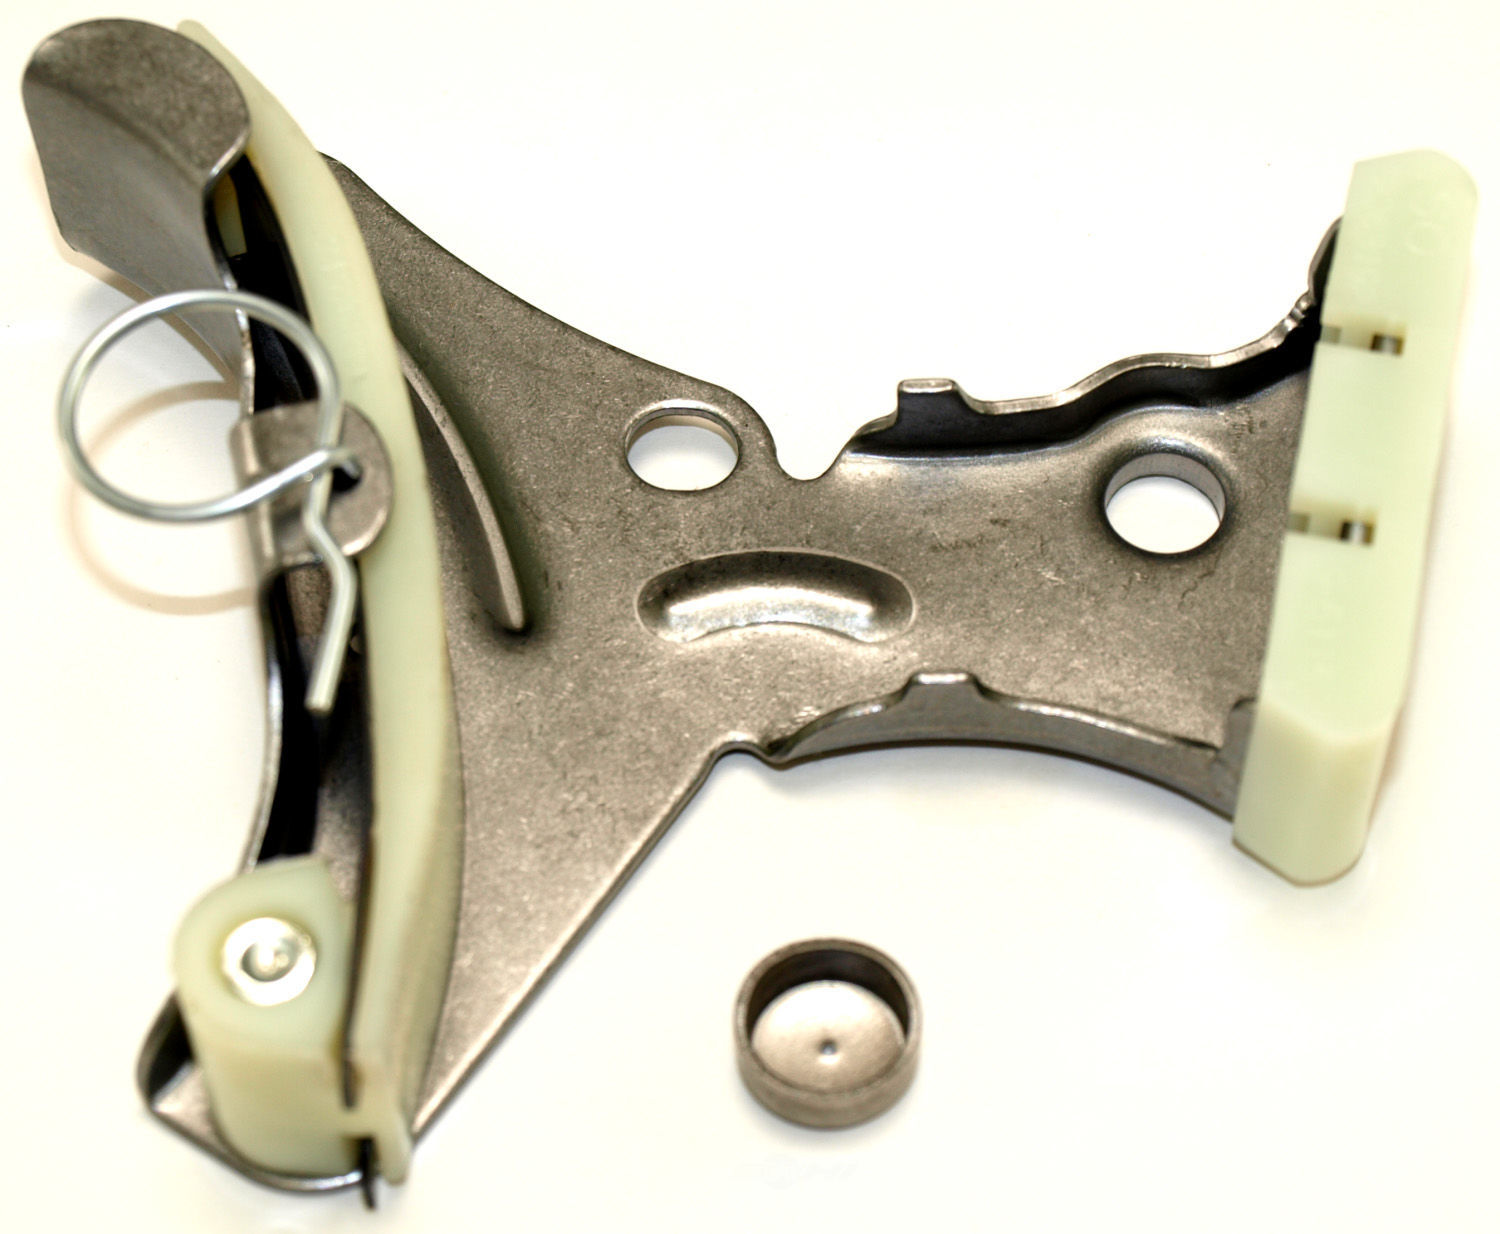 CLOYES - Engine Timing Chain Tensioner (Upper) - CLO 9-5115